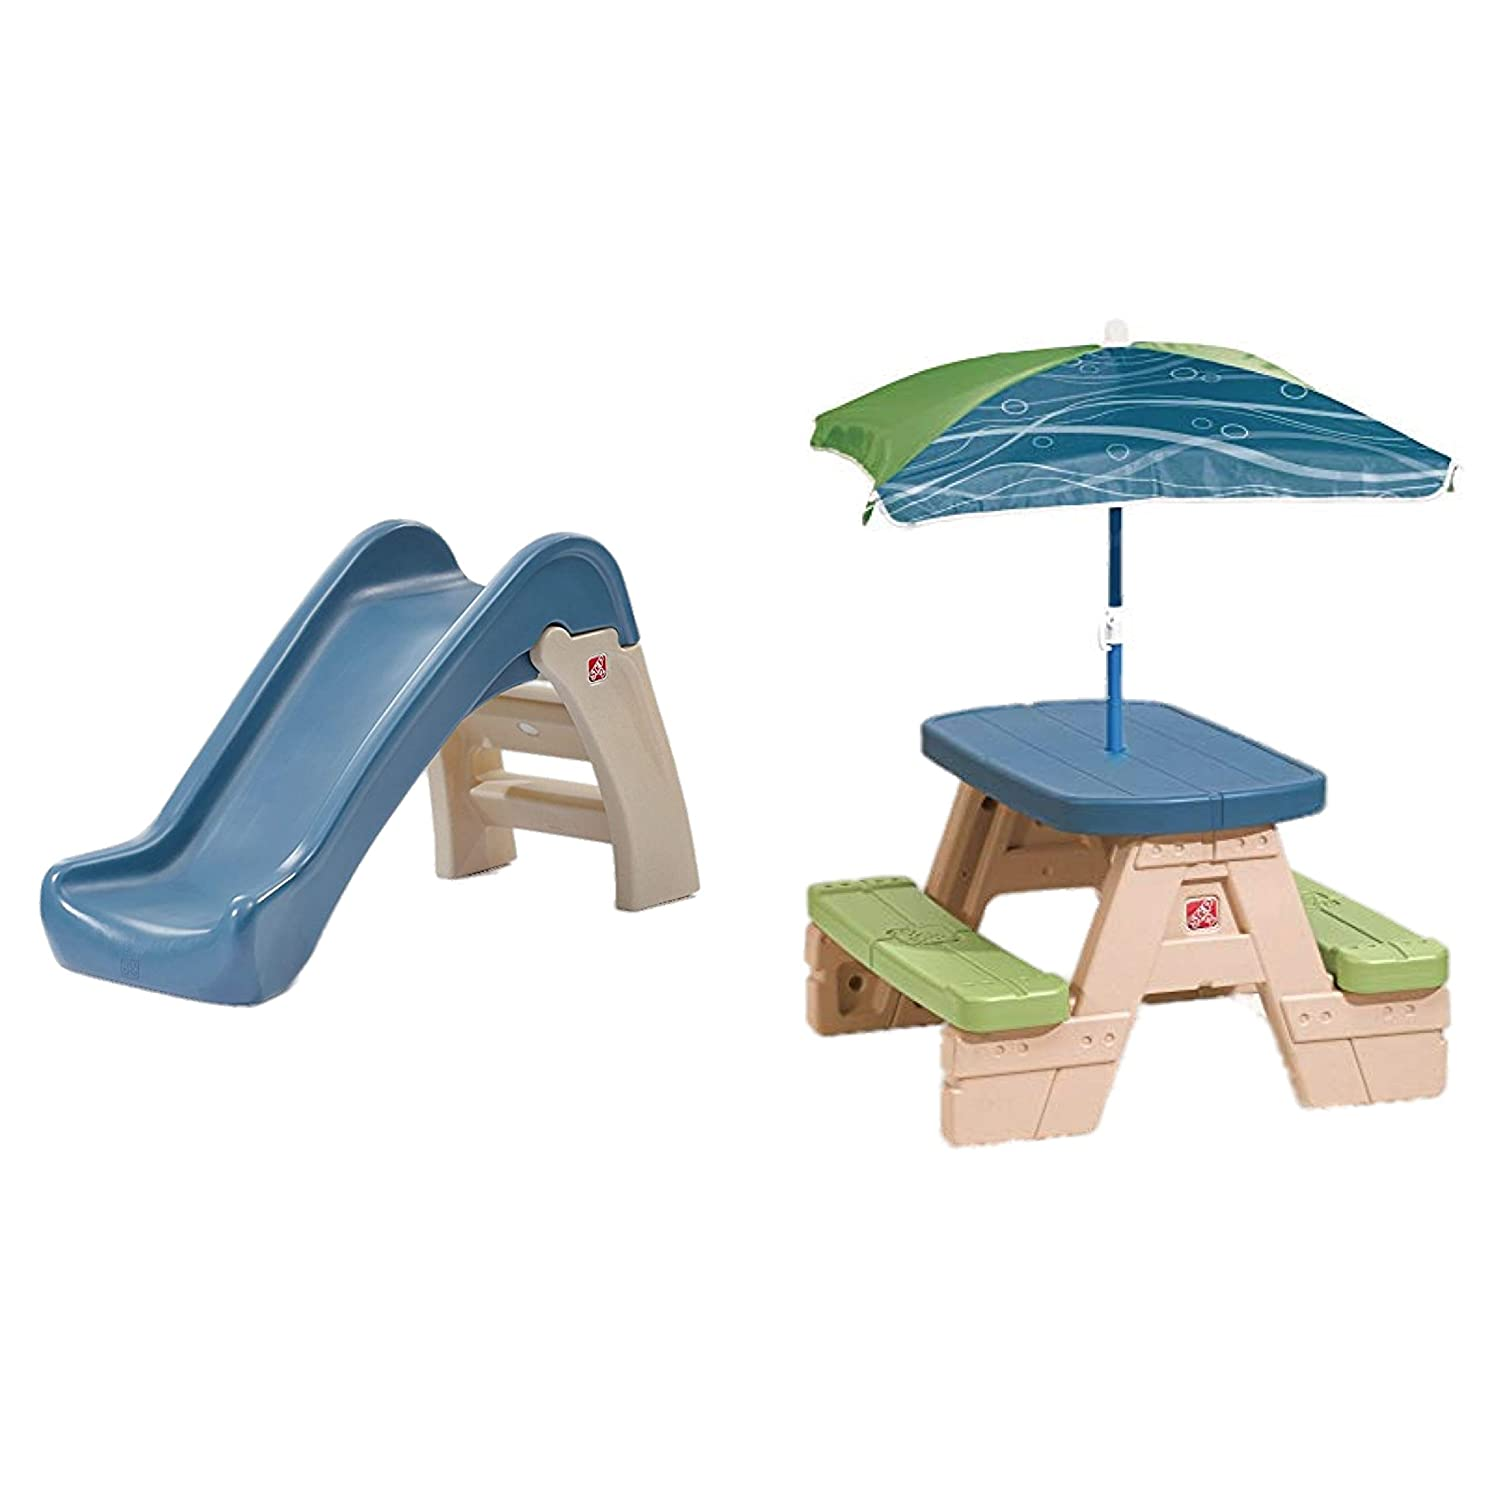 Step2 Play and Fold Jr Bundle Includes 2 Items Kids Slide and Step2 Sit and Play Kids Picnic Table with Umbrella